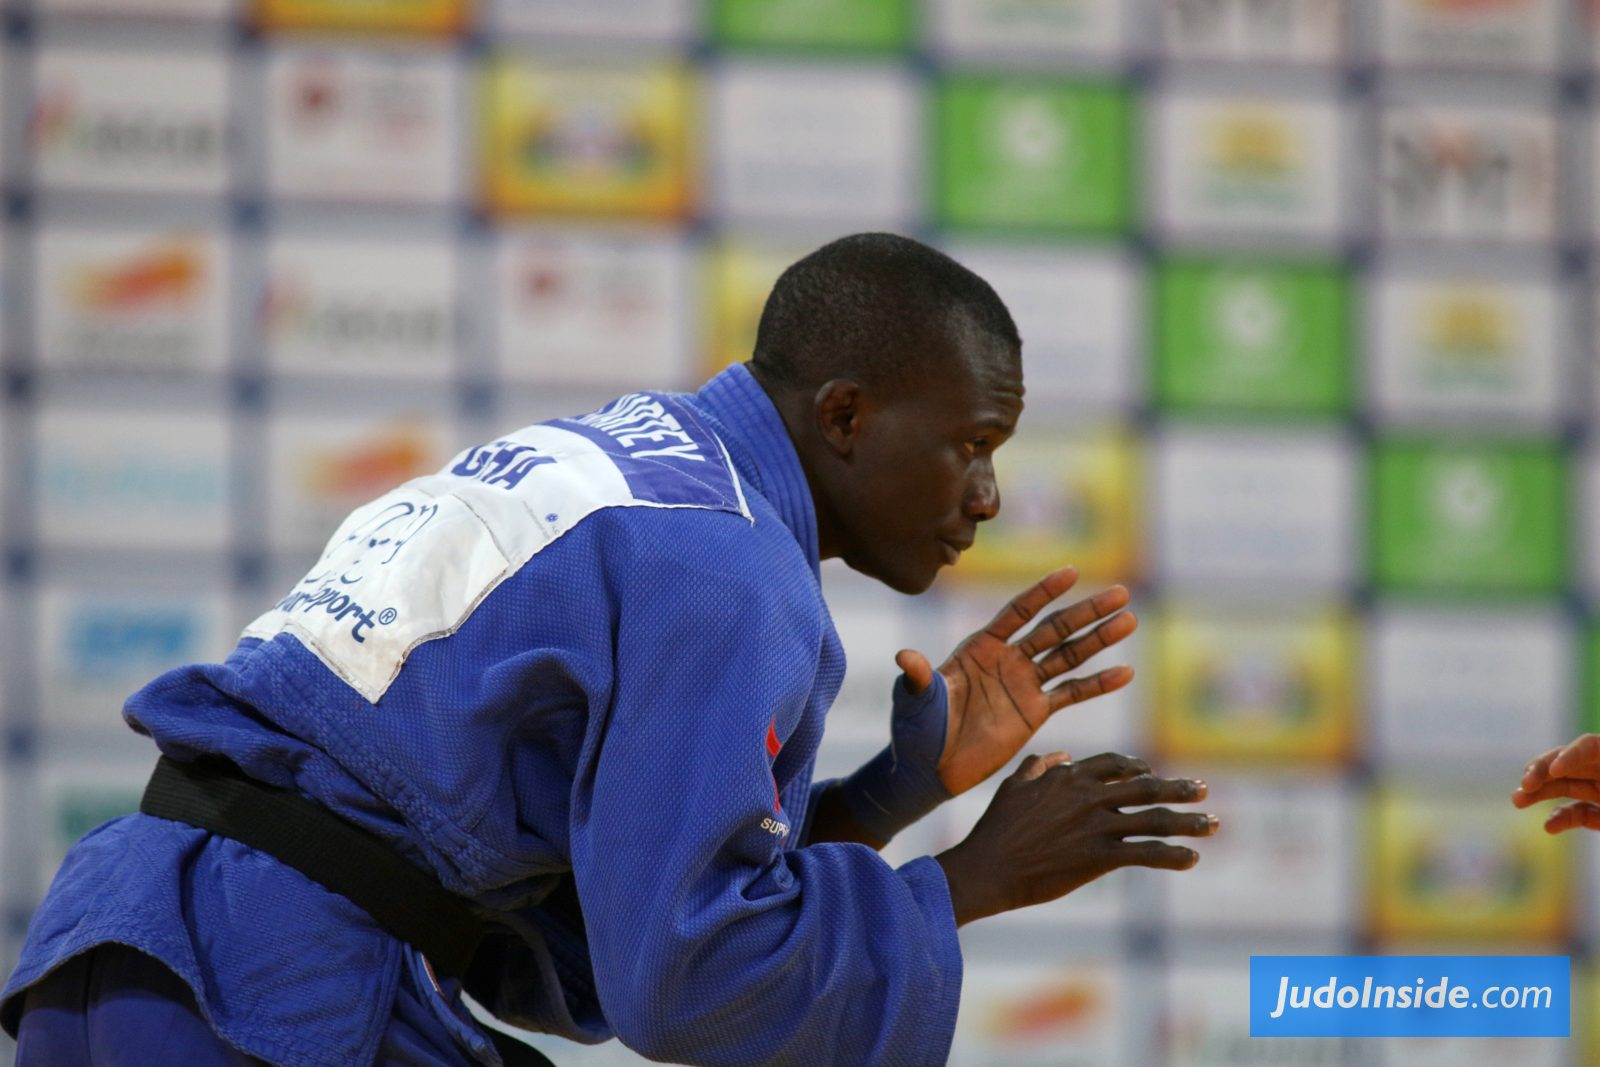 Second description